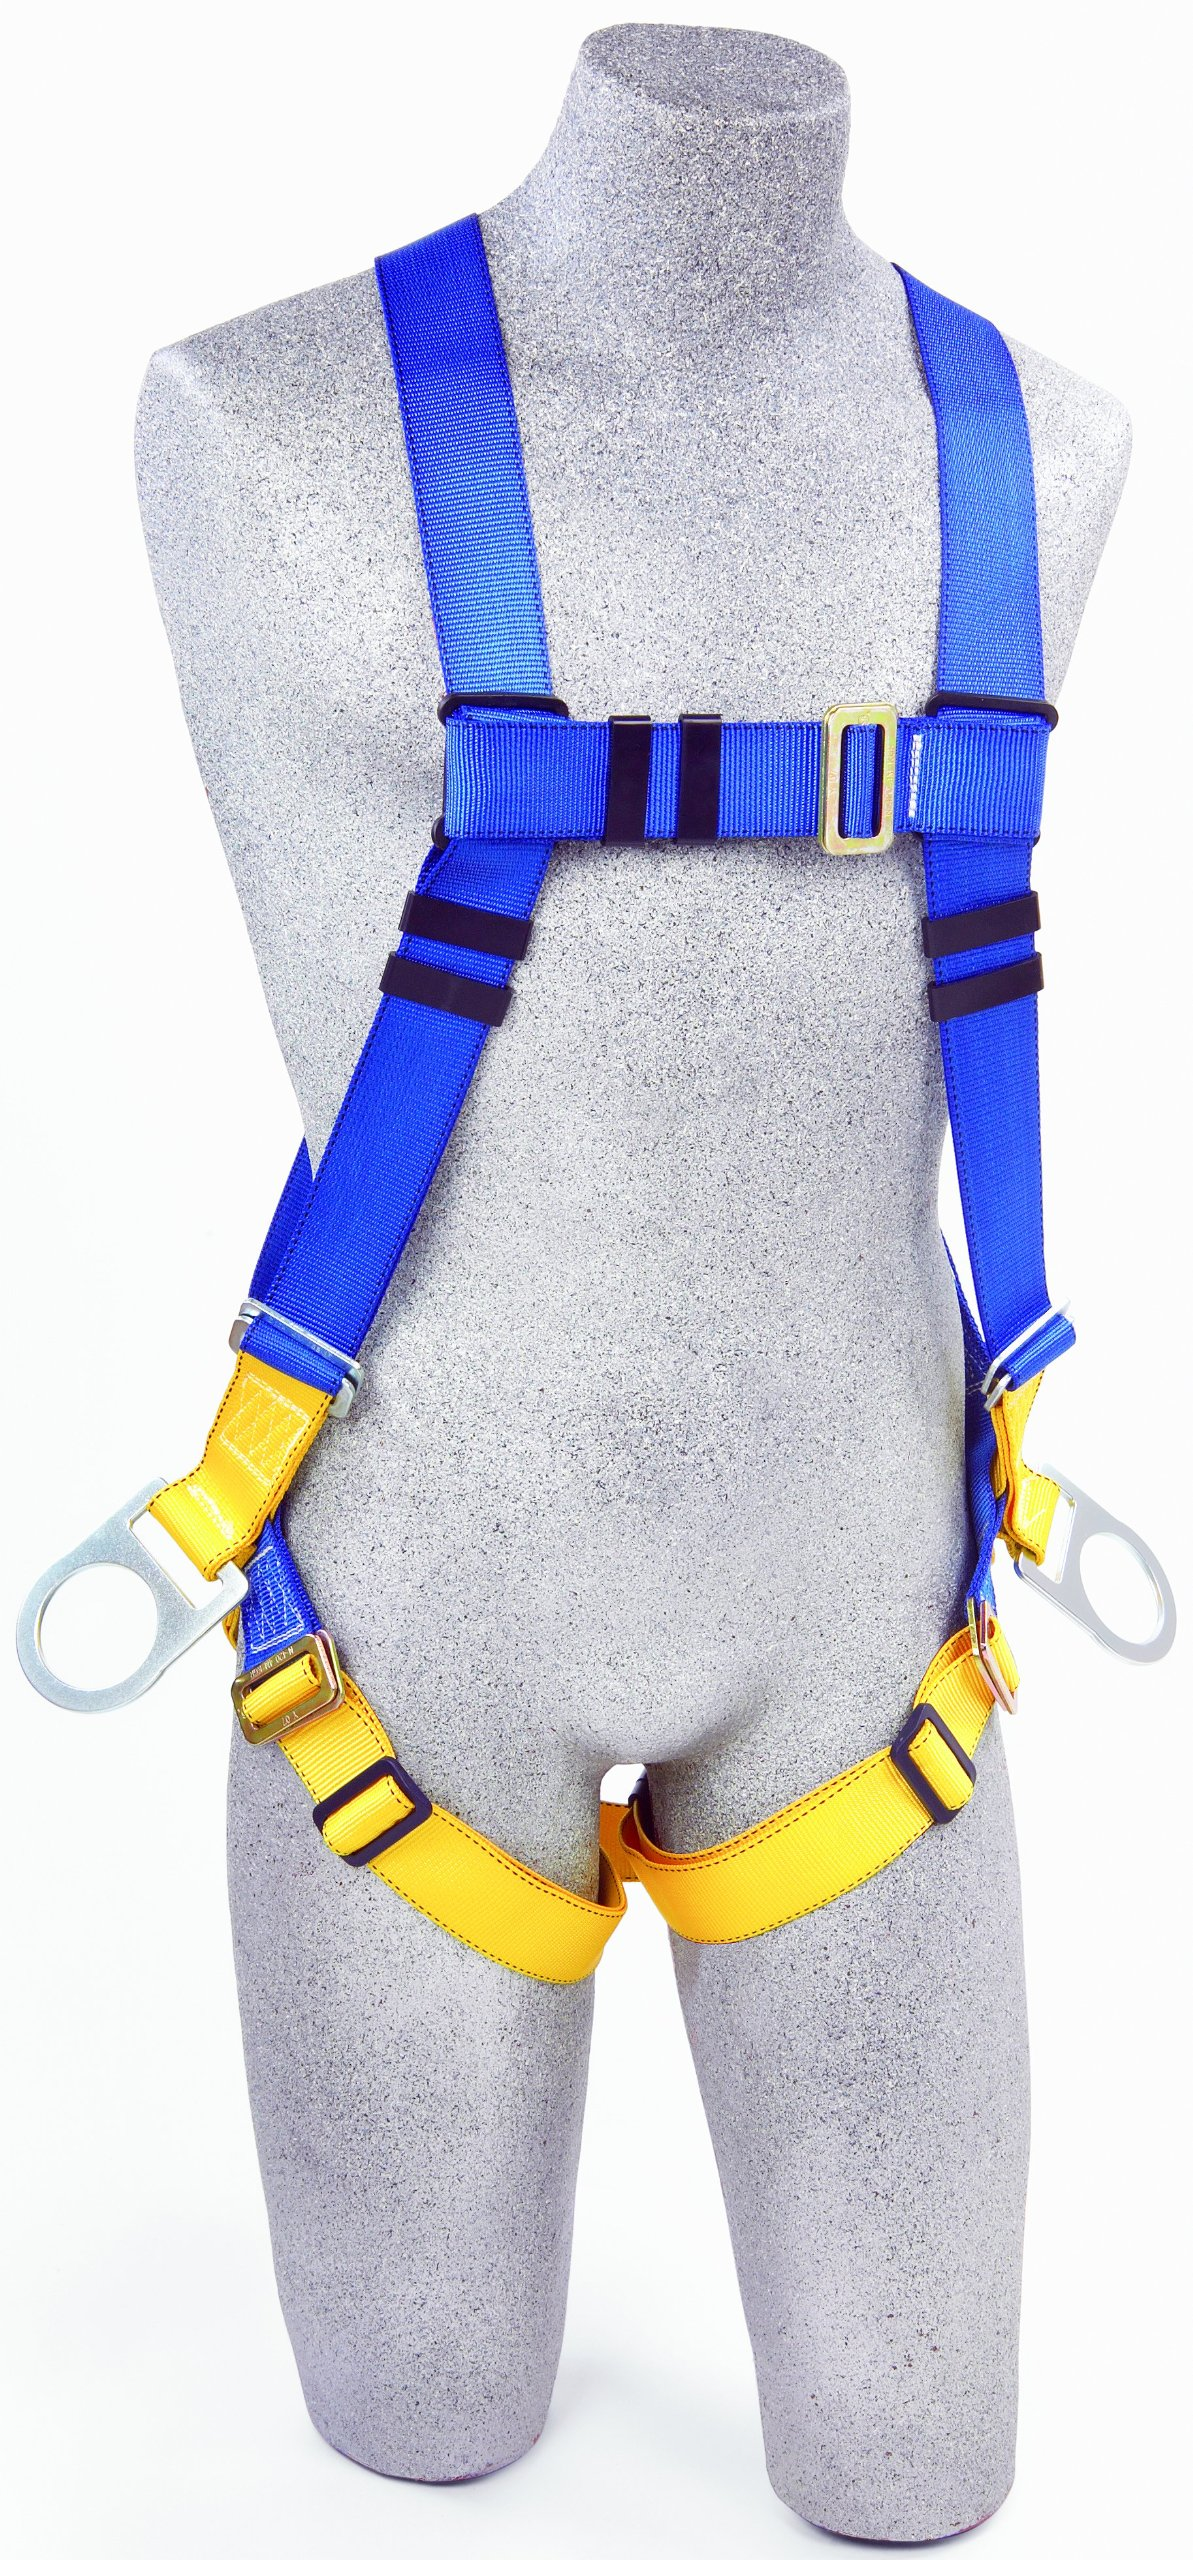 3M Protecta First AB17540 Fall Protection 5-Point Adjustment Full Body Harness with Back and Side D-Rings, Universal, 310  lb., Blue/Yellow